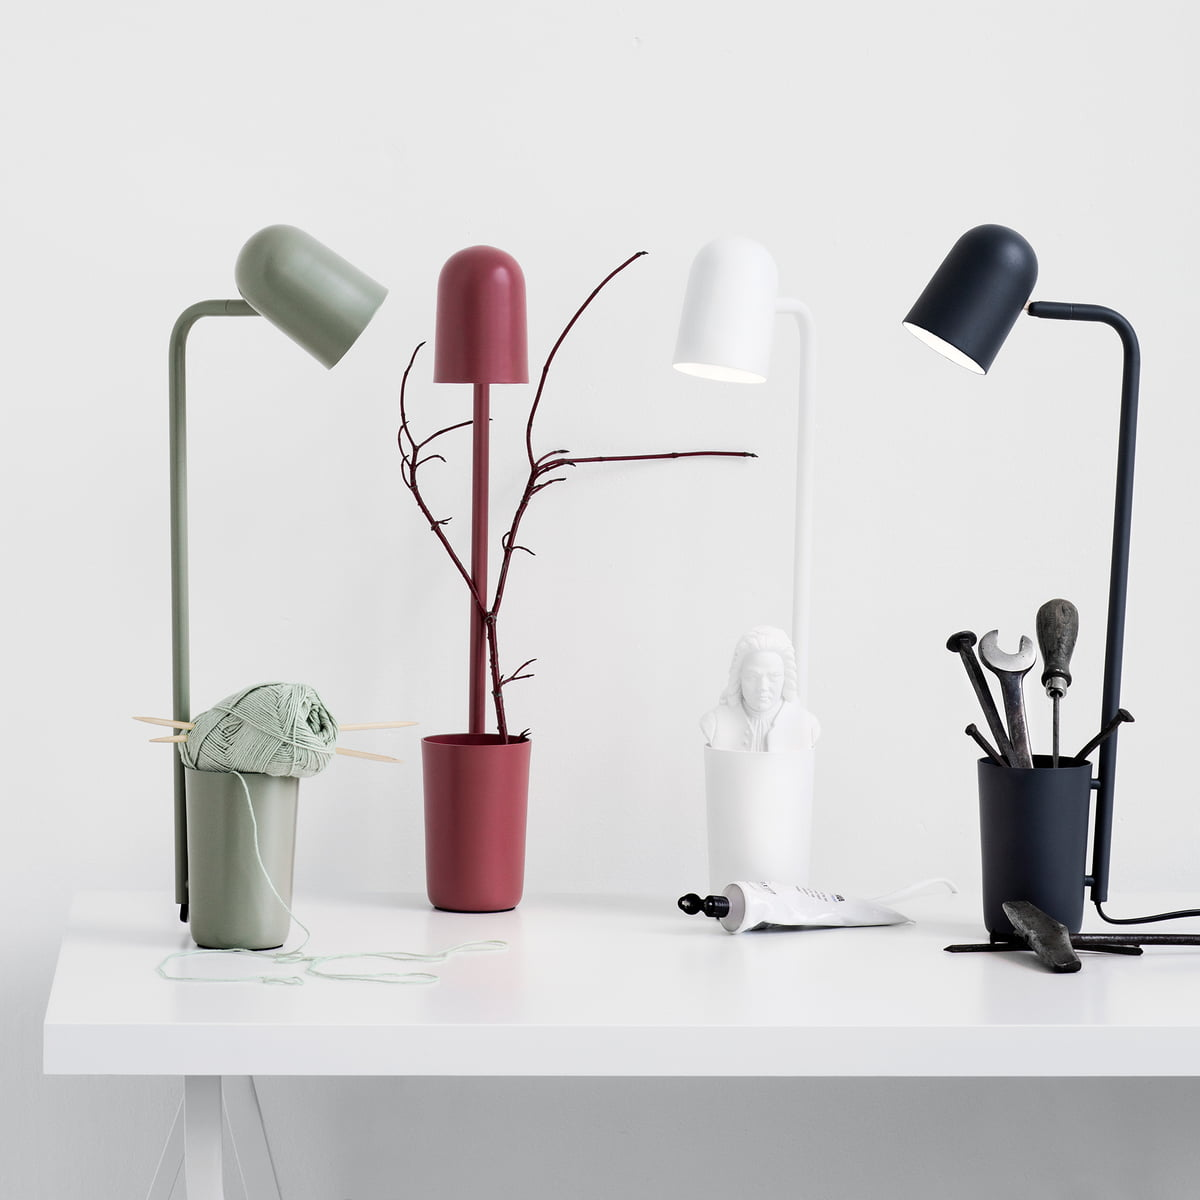 The Northernlighting   Buddy Table Lamp In Olive Green, Marsala Red, White And  Black